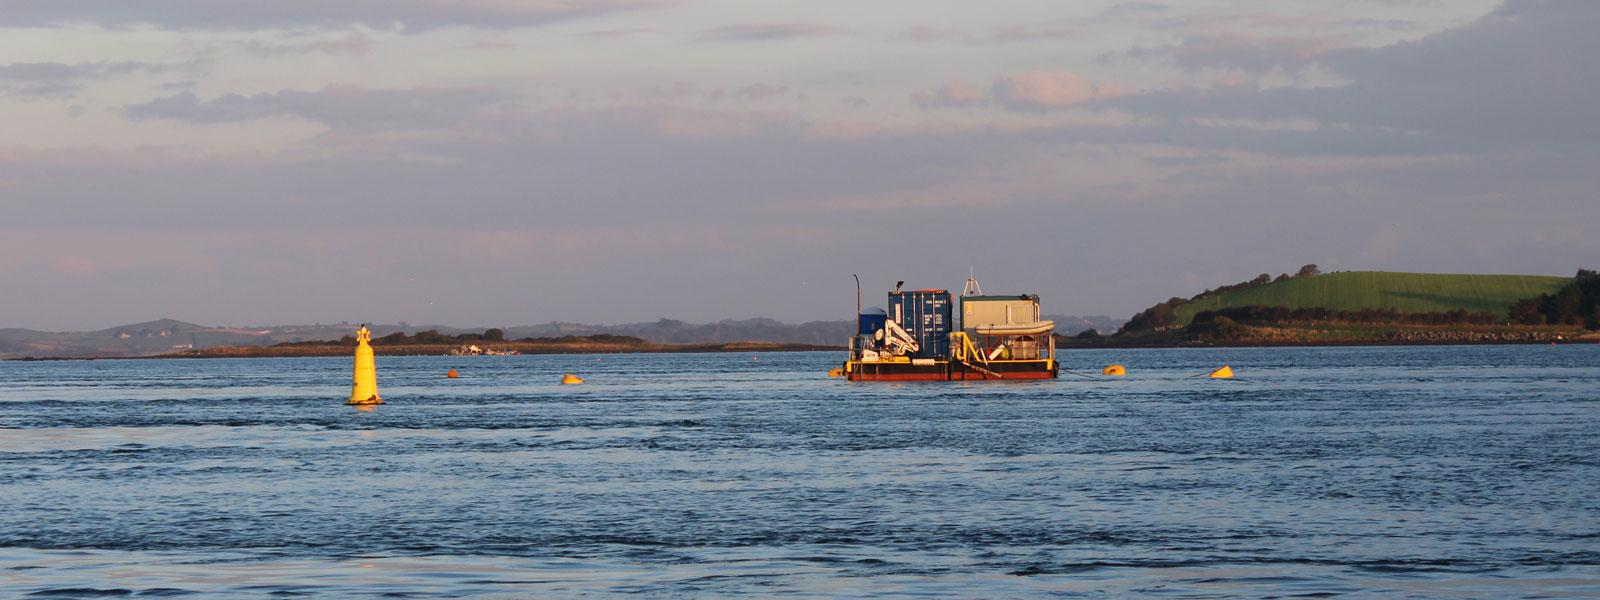 Minesto's test and demonstration facility located in Strangford Lough, Nortern Ireland